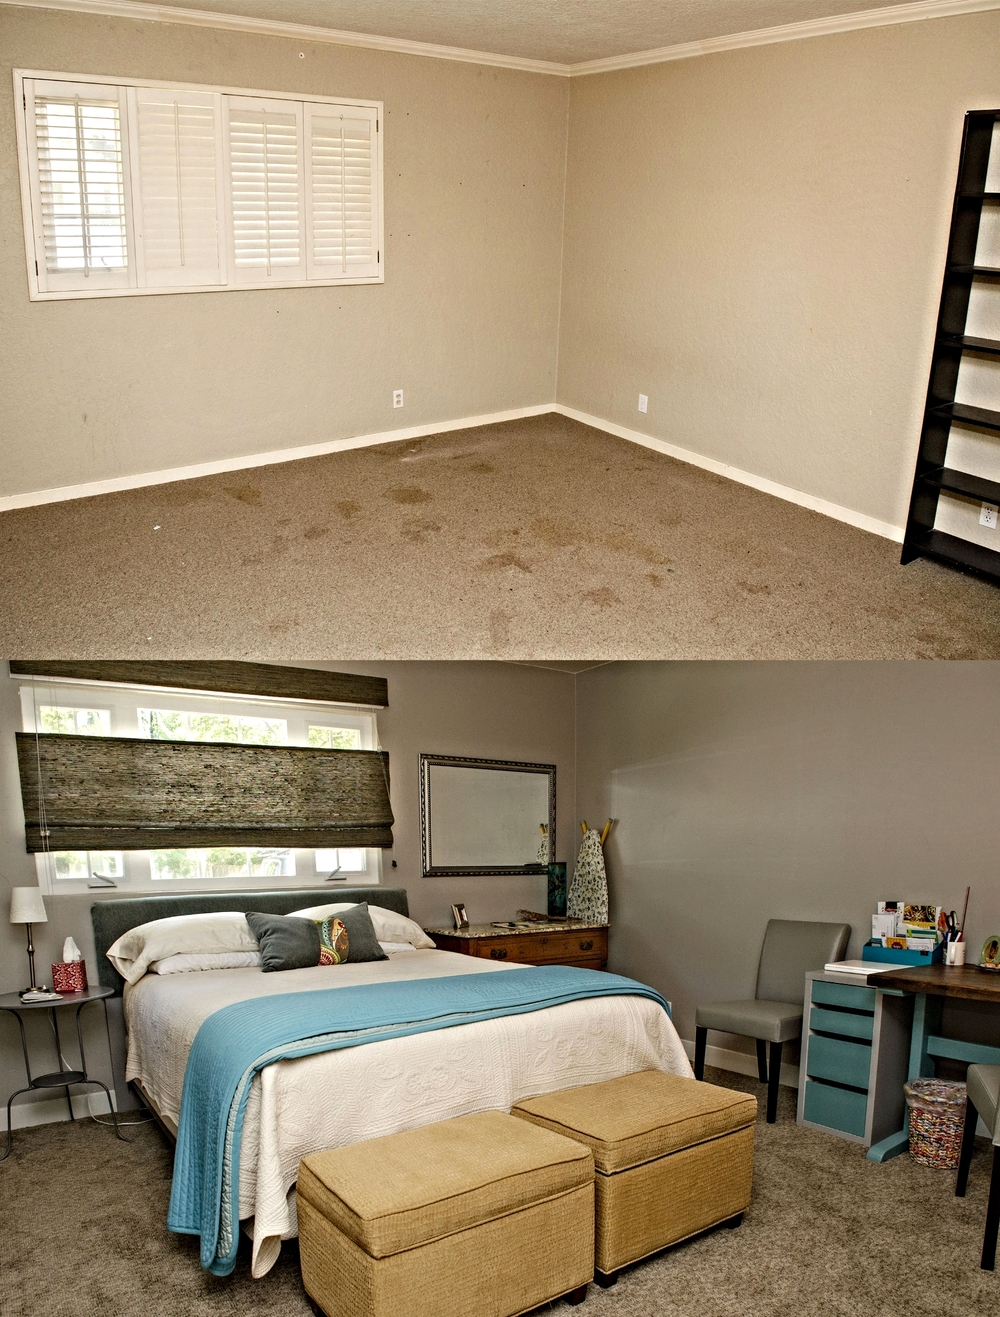 B4 & After Berkeley6.jpg